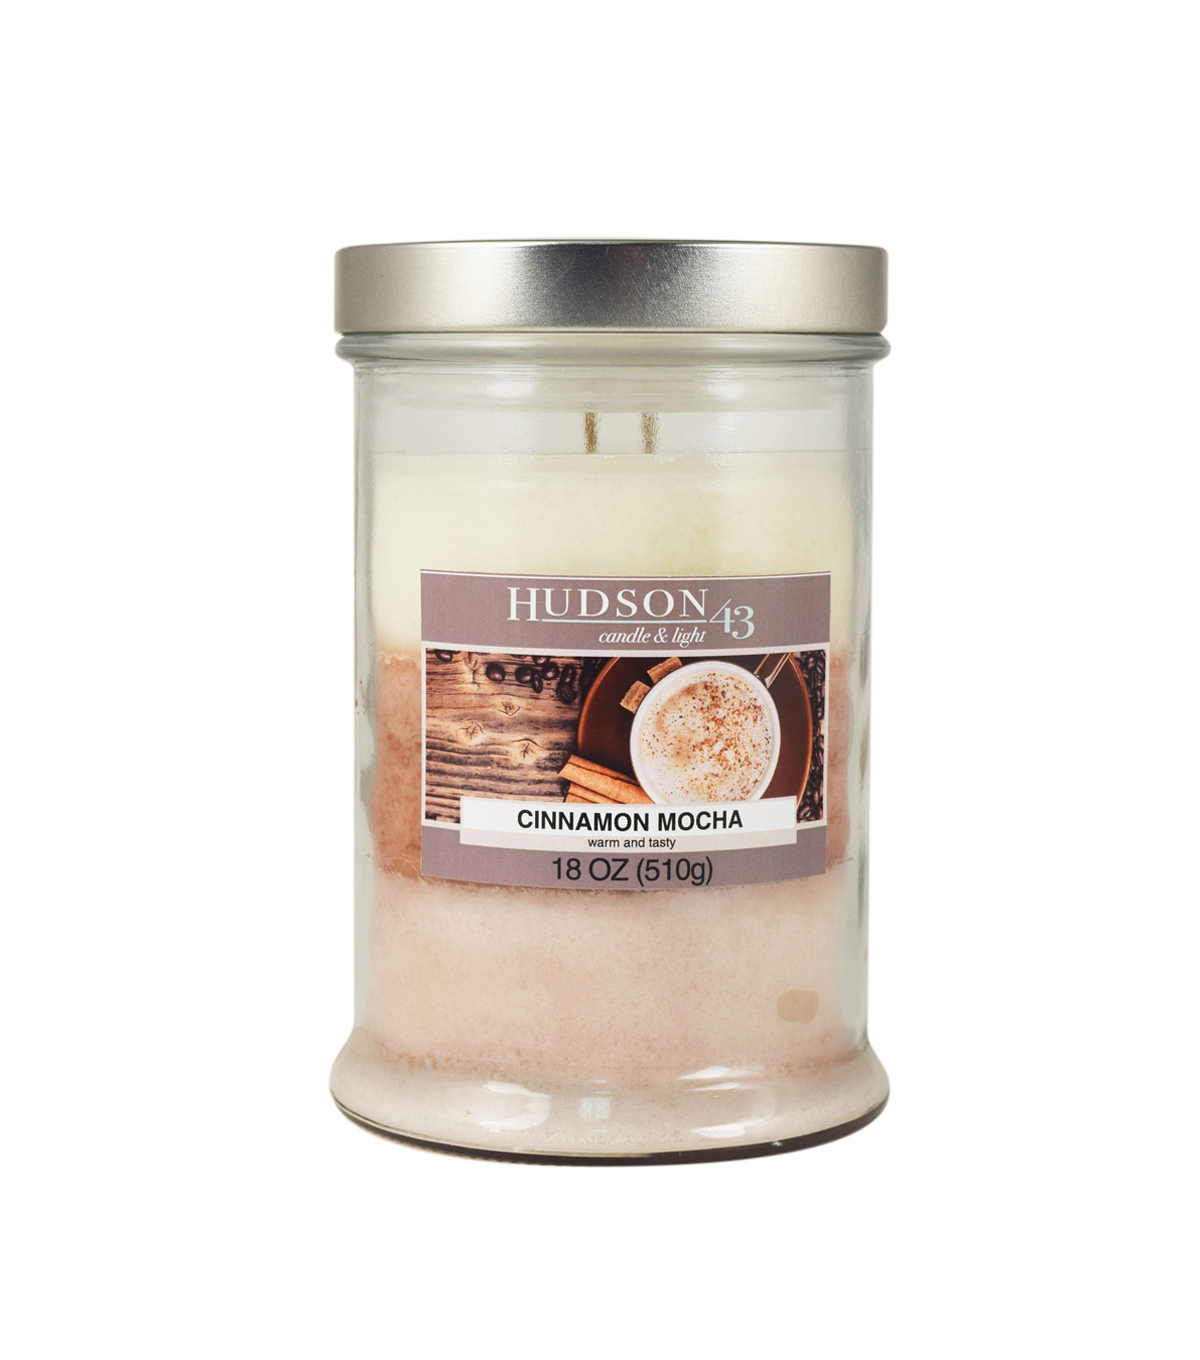 Hudson 43™ Candle & Light Collection 18oz Triple Pour Cafe Mocha Jar